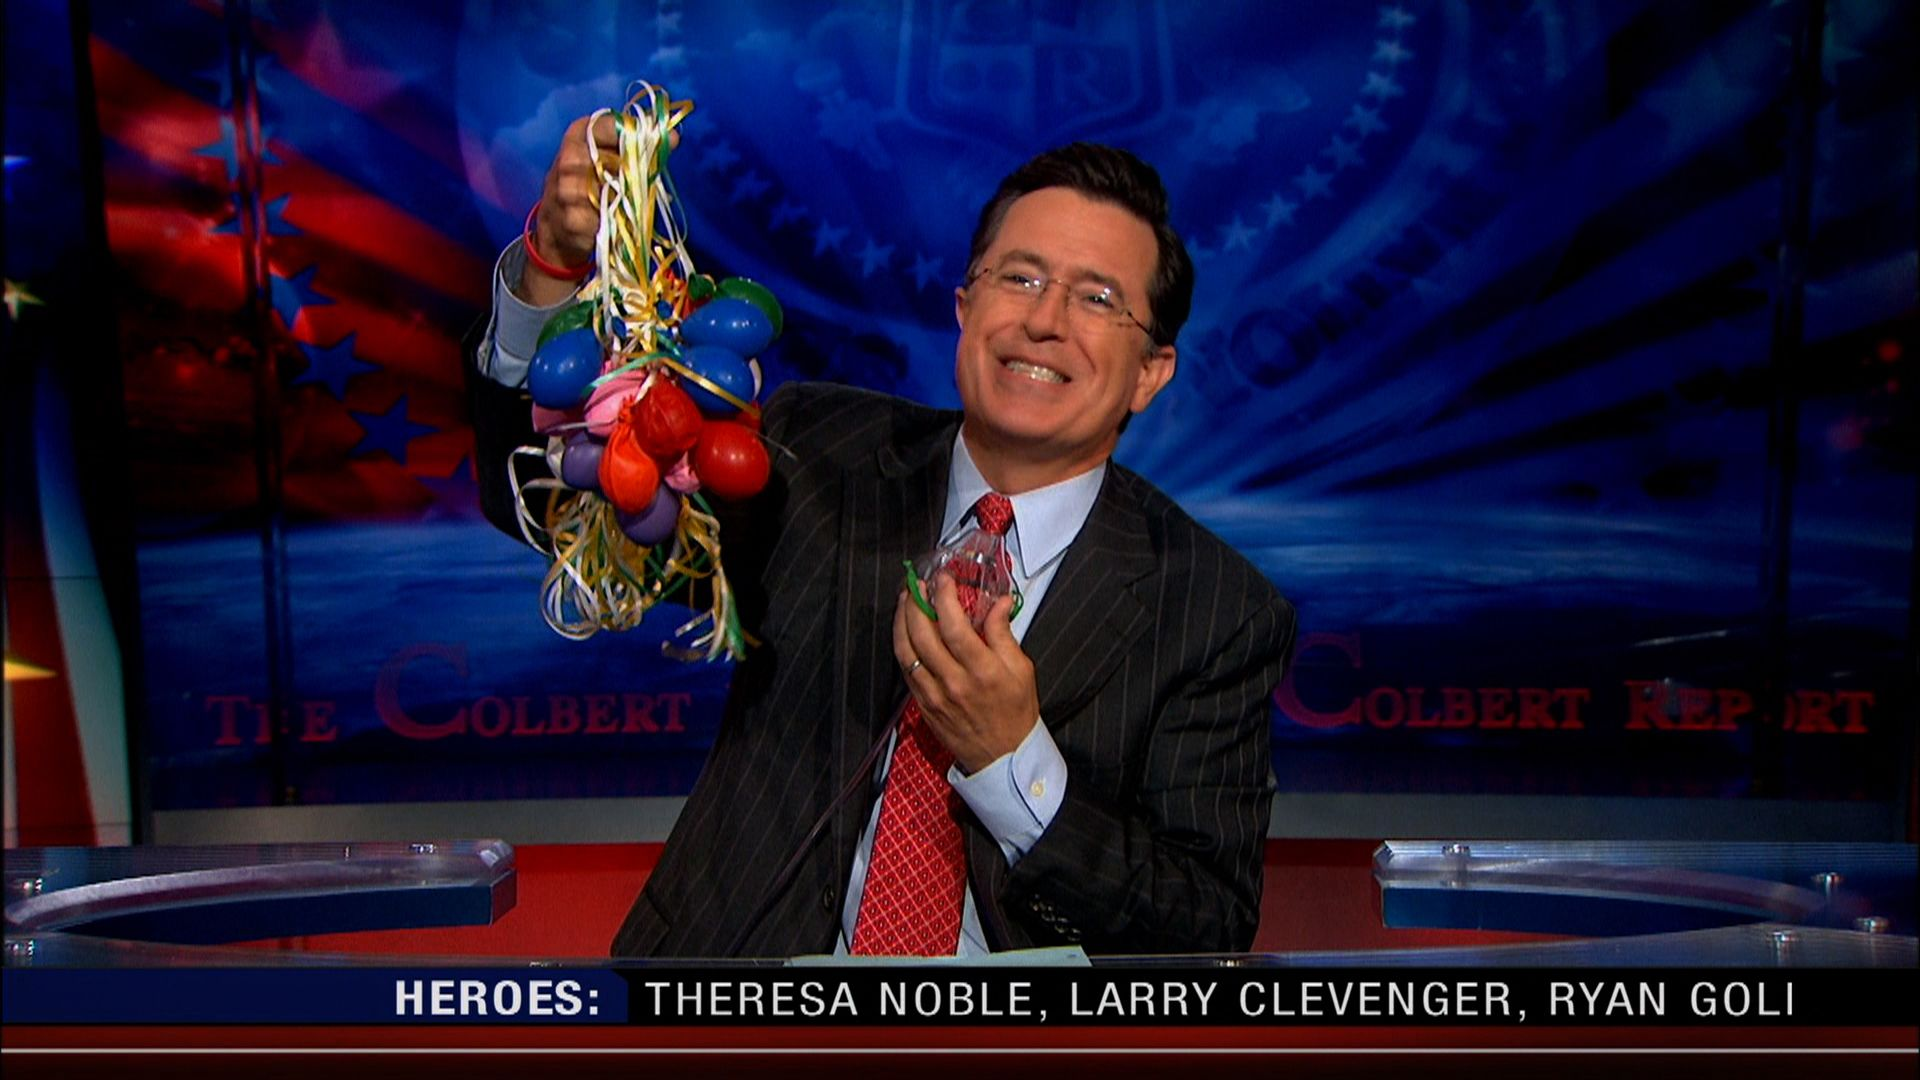 Colbert report heterosexual accountability buddy